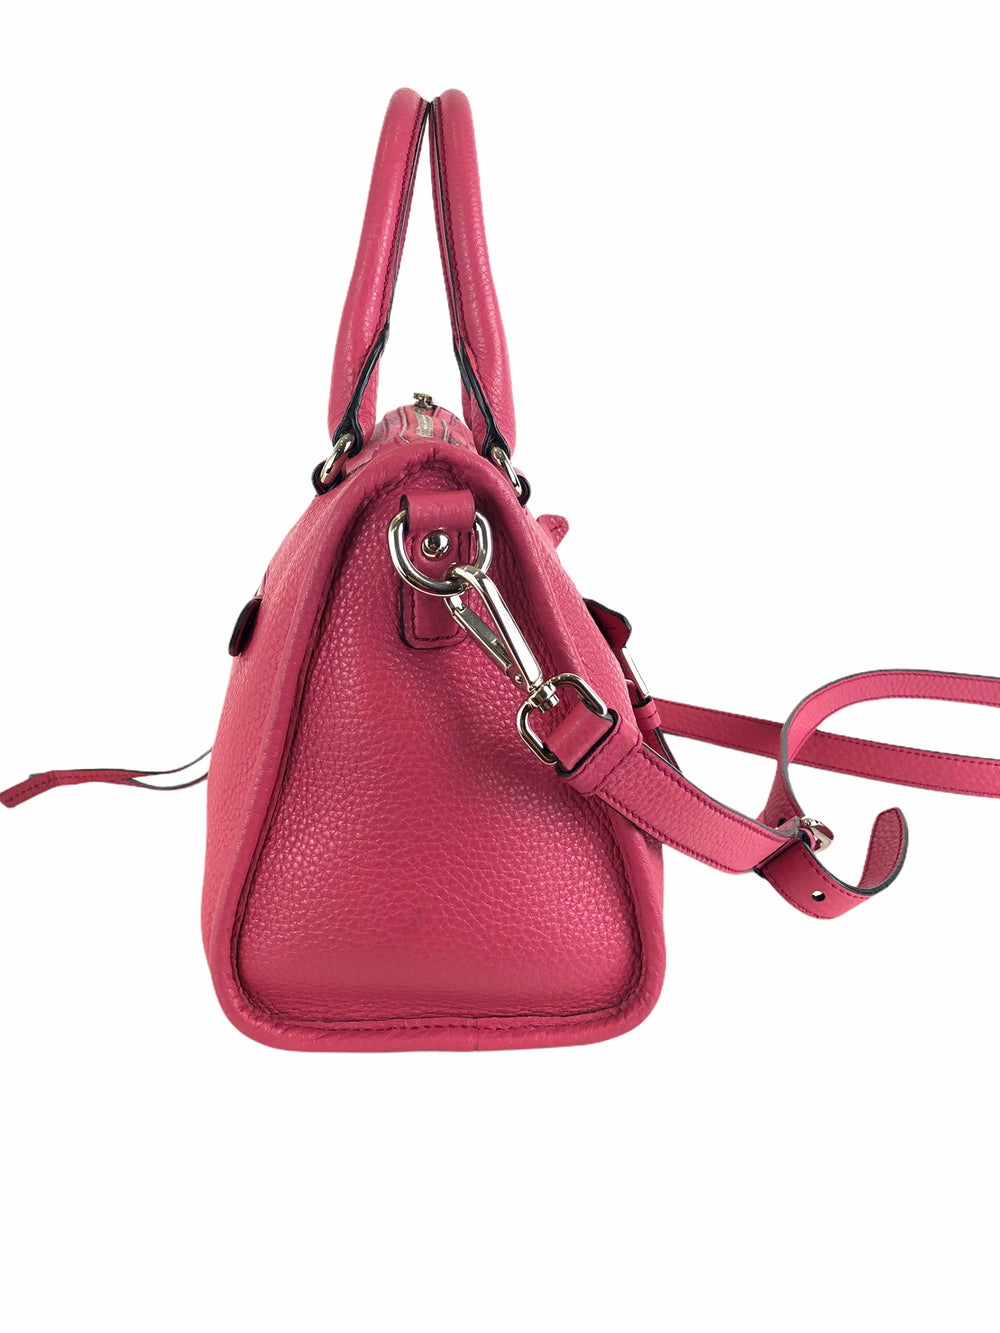 Prada Cerise Leather Tote - As Seen on Instagram